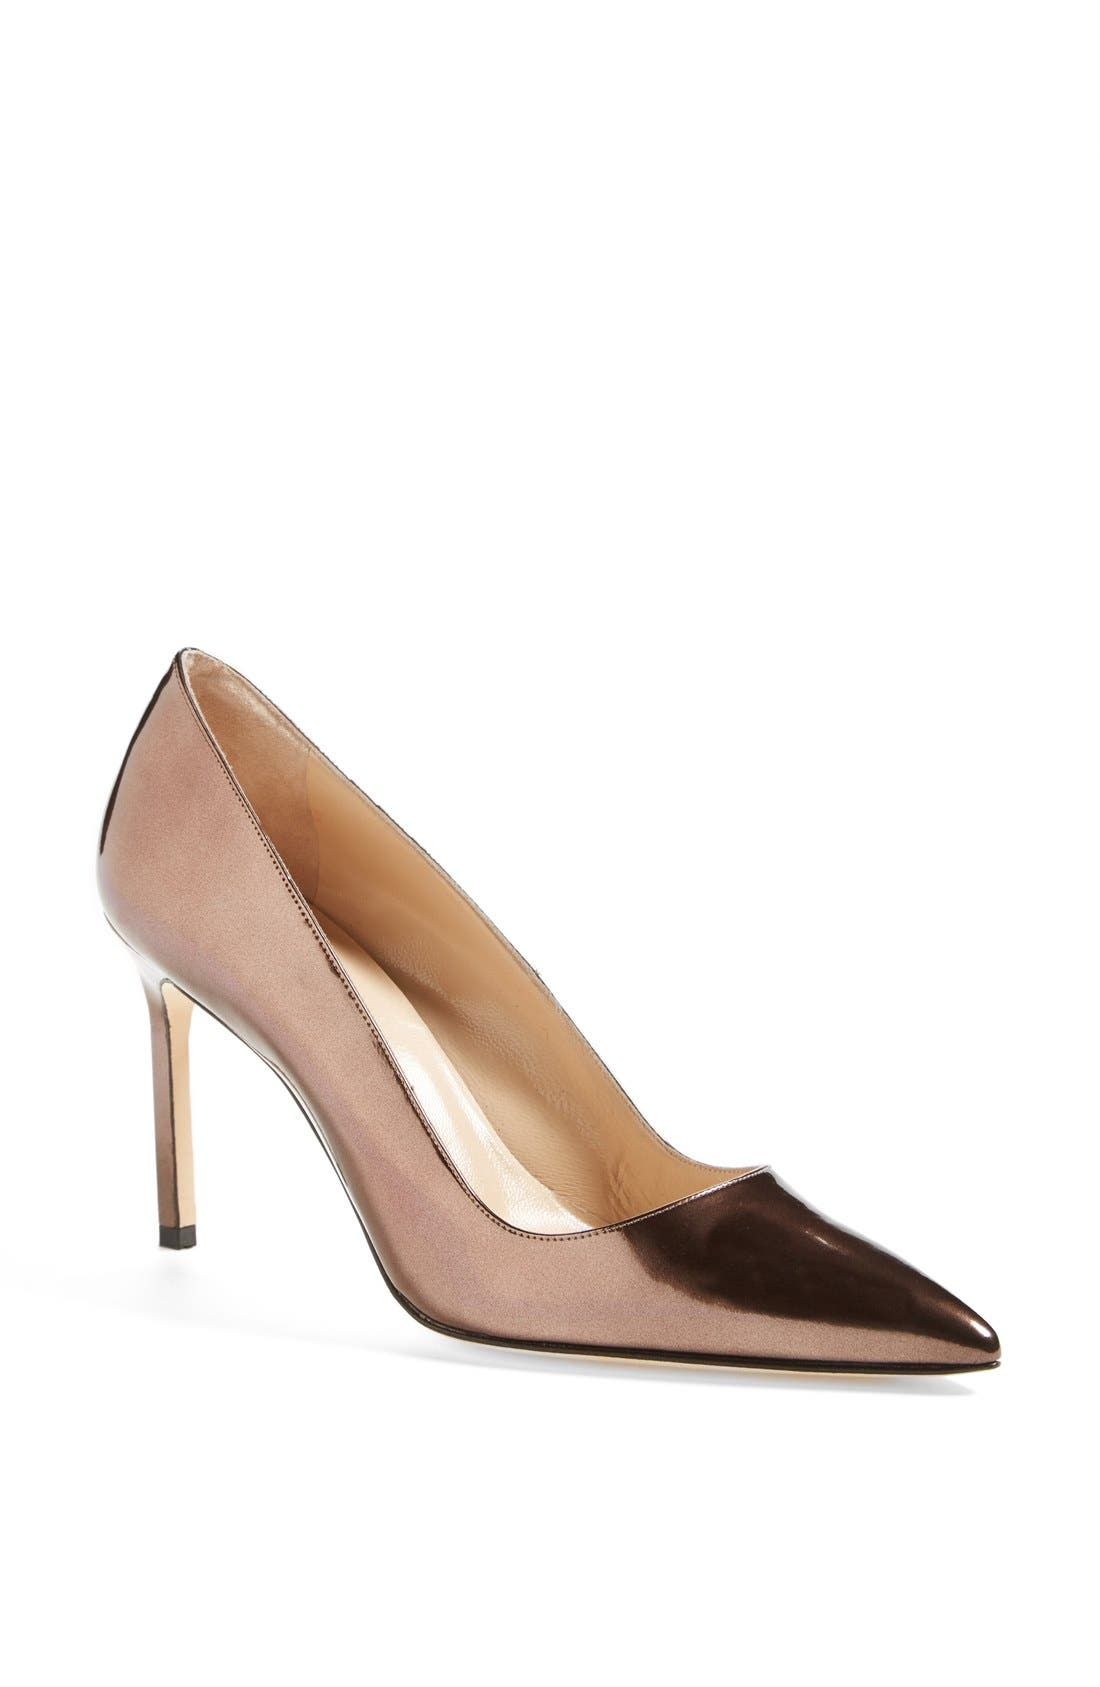 Alternate Image 1 Selected - Manolo Blahnik 'BB' Patent Leather Pointy Toe Pump